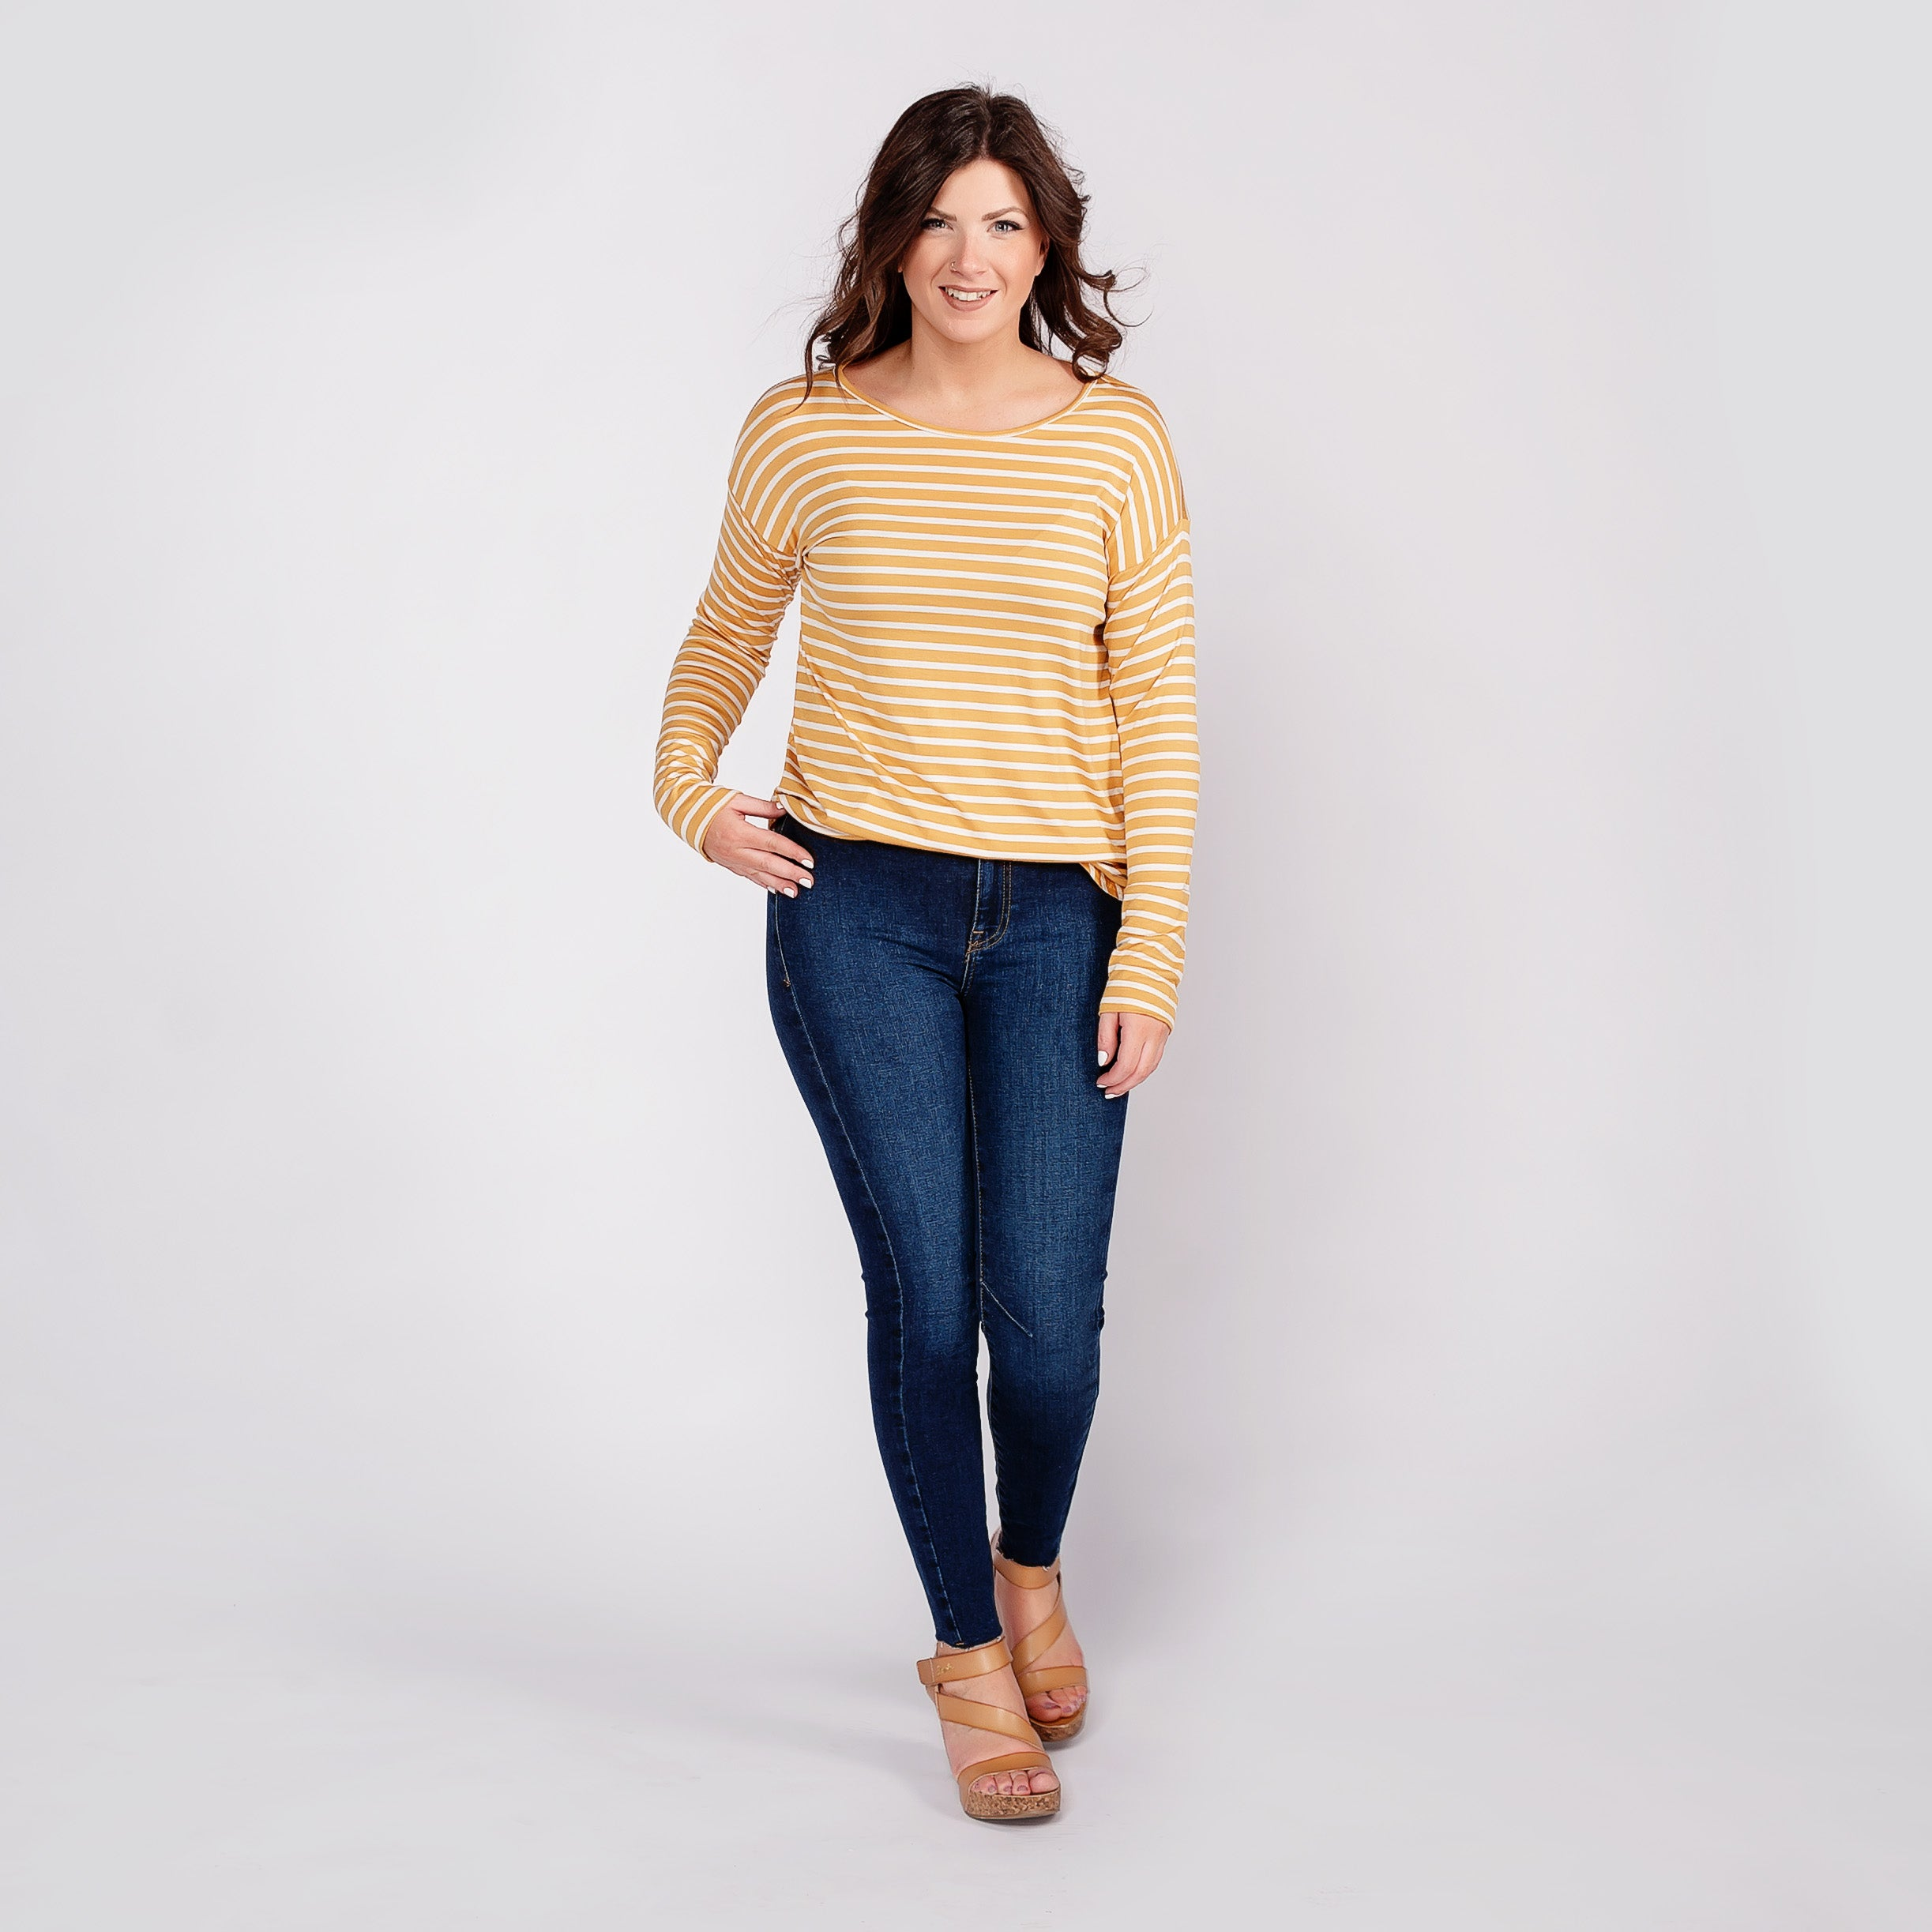 Round Bottom Striped Top with Thumb Holes *Final Sale*